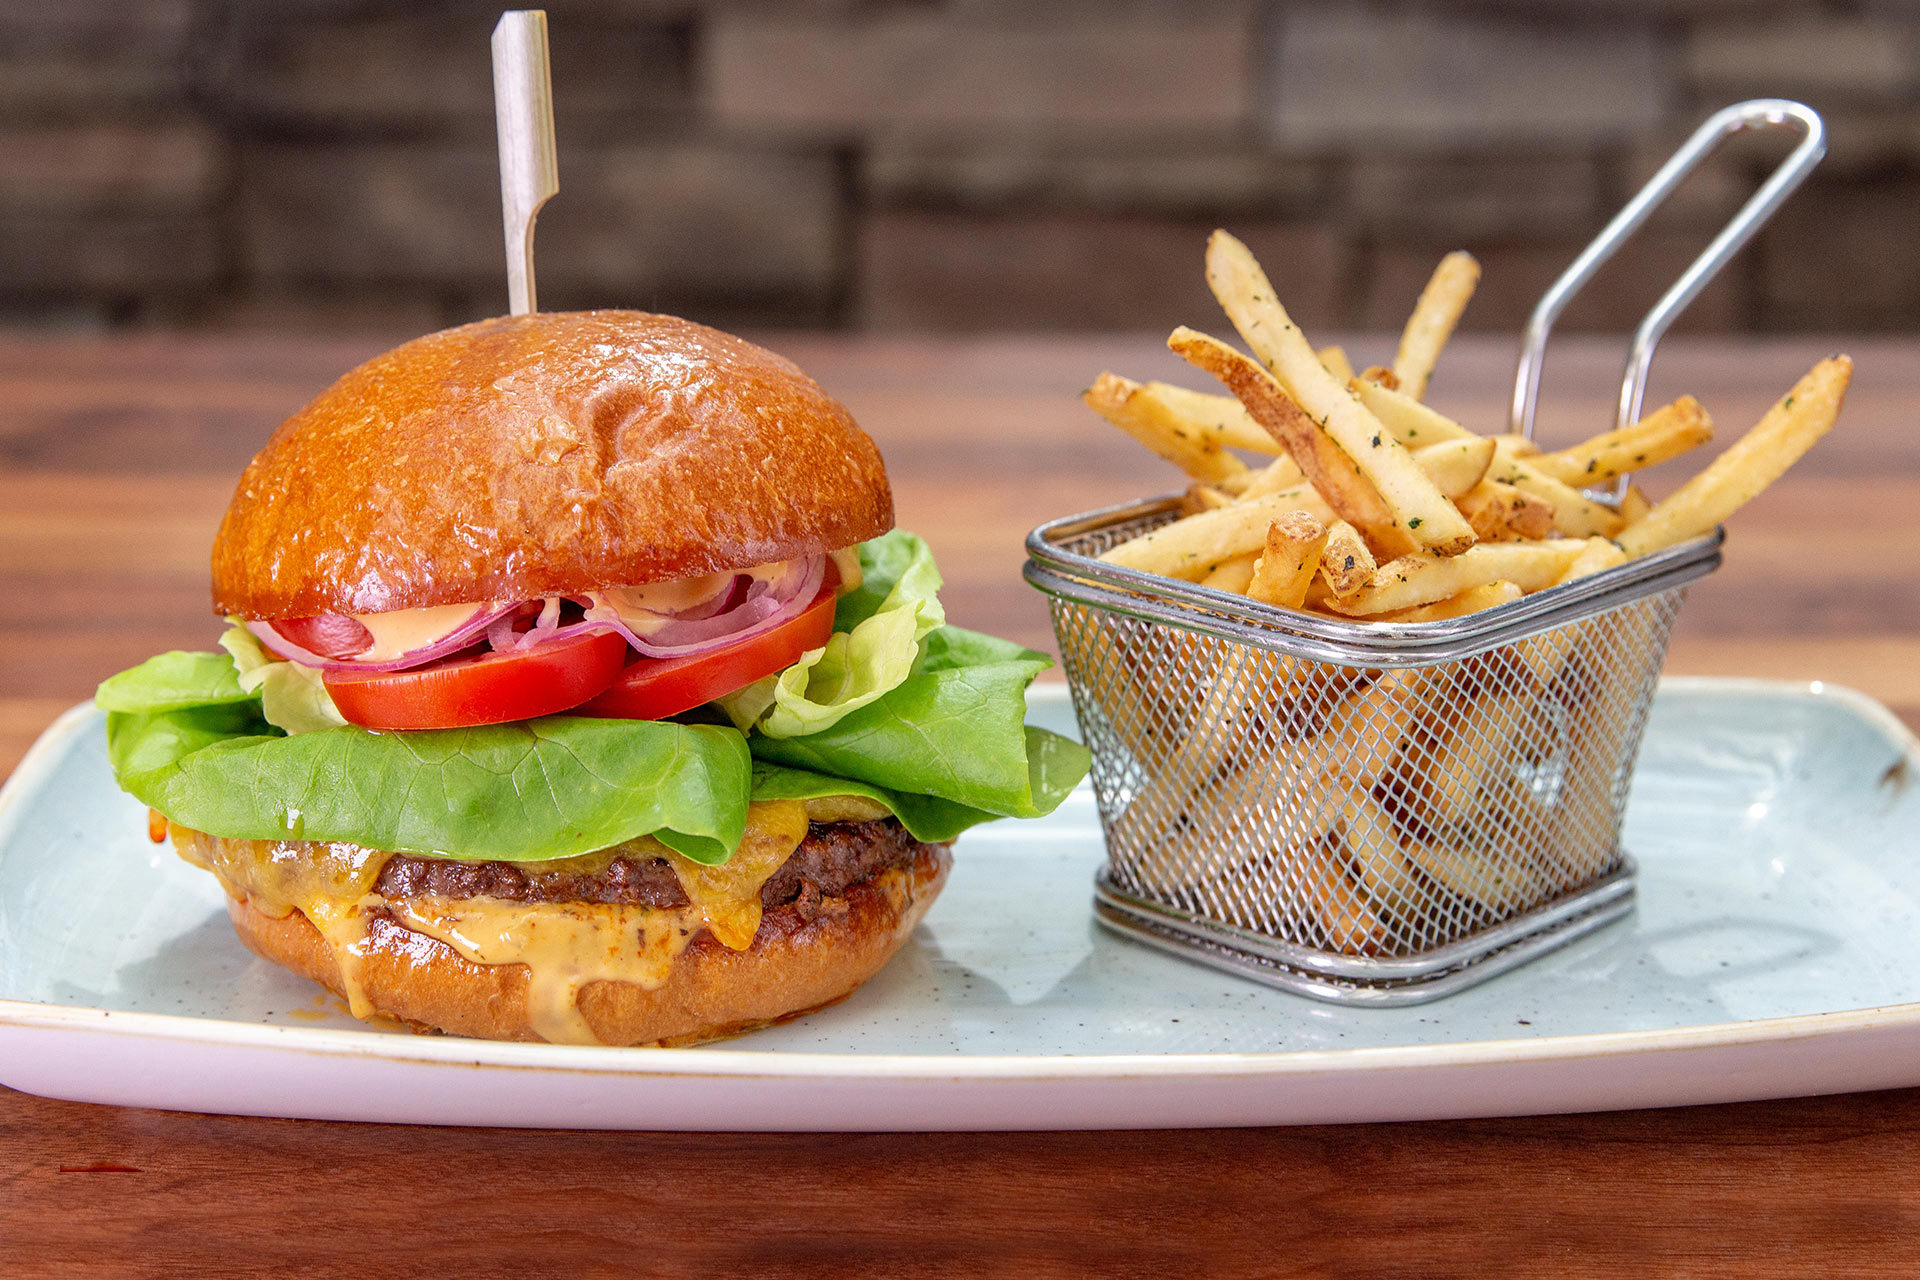 Juicy steak burger piled high with all the fixings, a basket of crispy french fries, and a fresh dill pickle half.